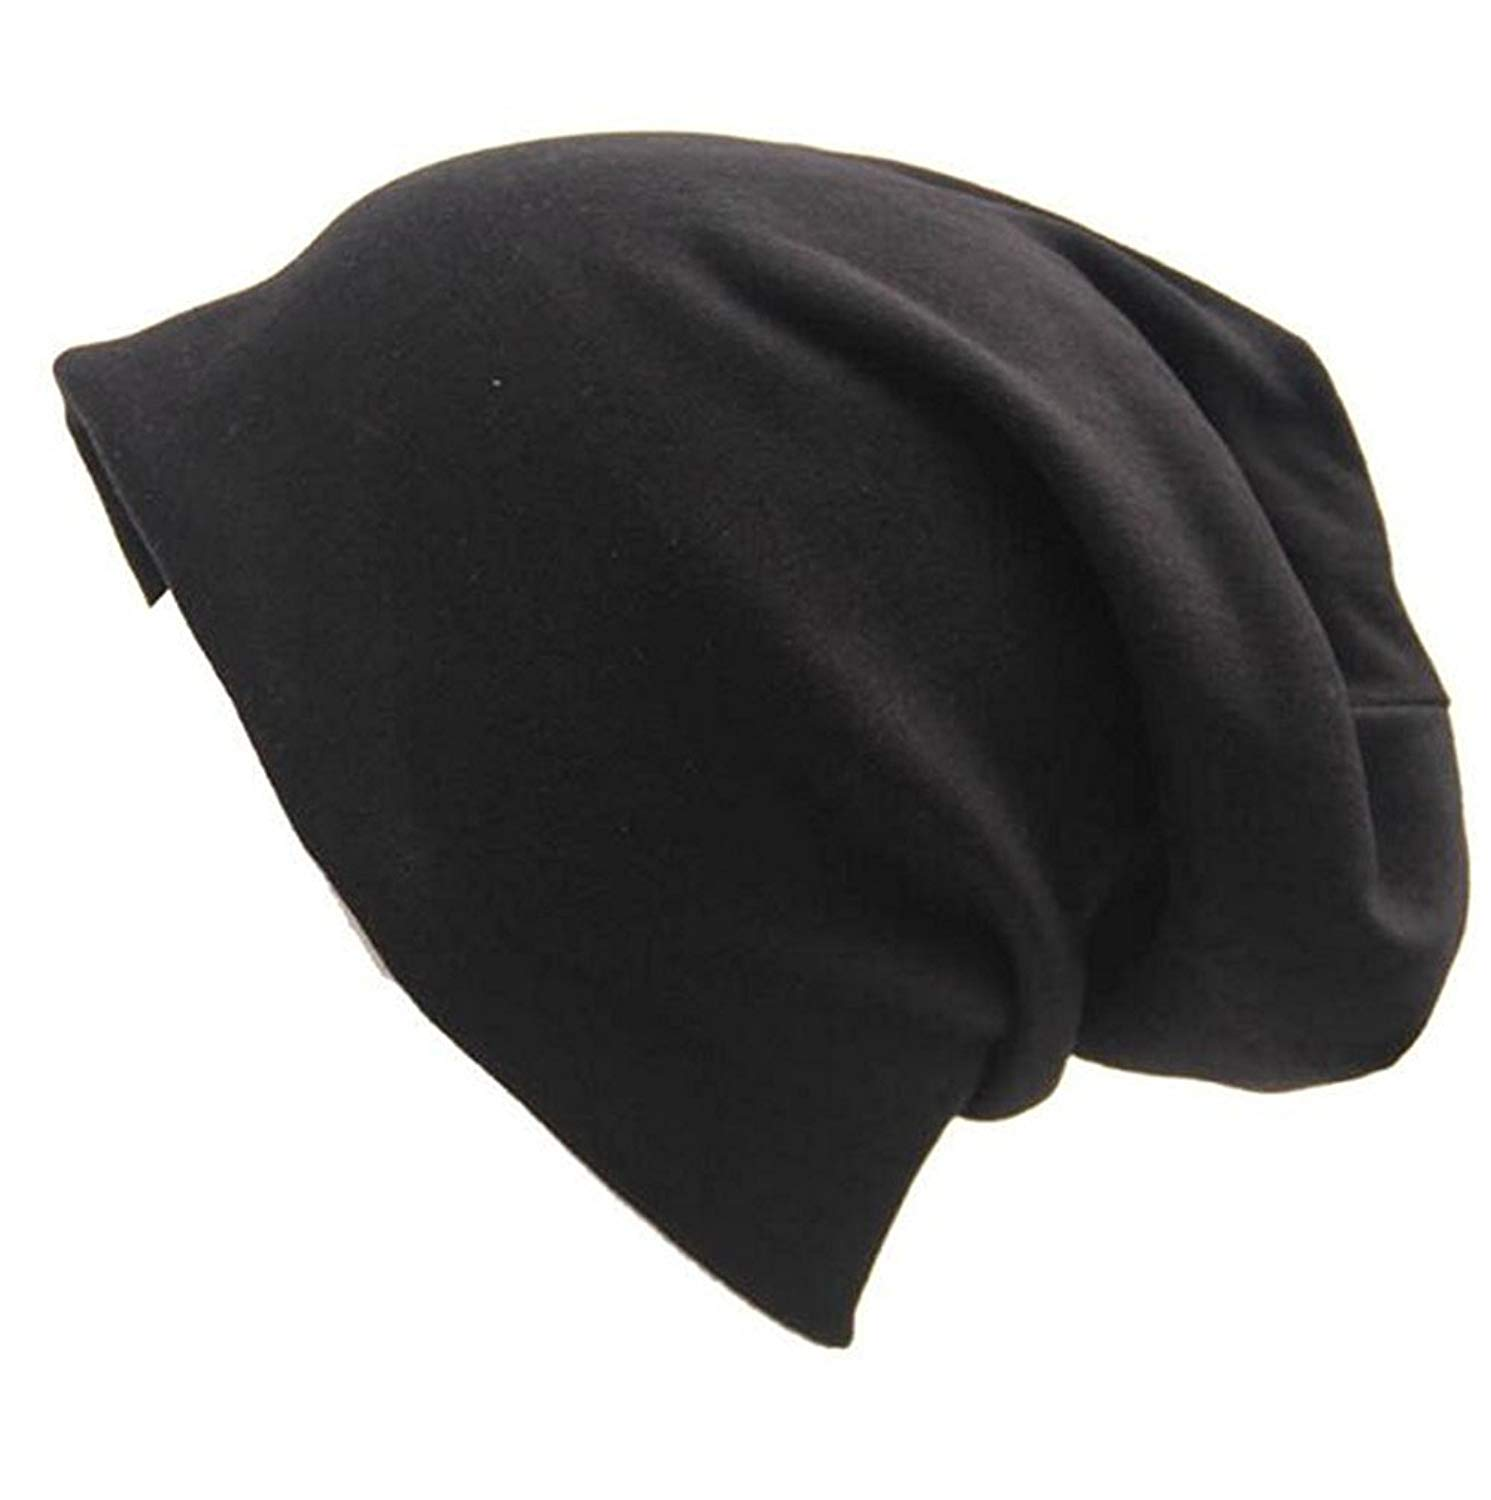 1bc77142bf3 Women Chemo Cap Indoors Sleep Caps Cotton Soft Baggy Stretch Skull Hats for  Hairloss Cancer Patients